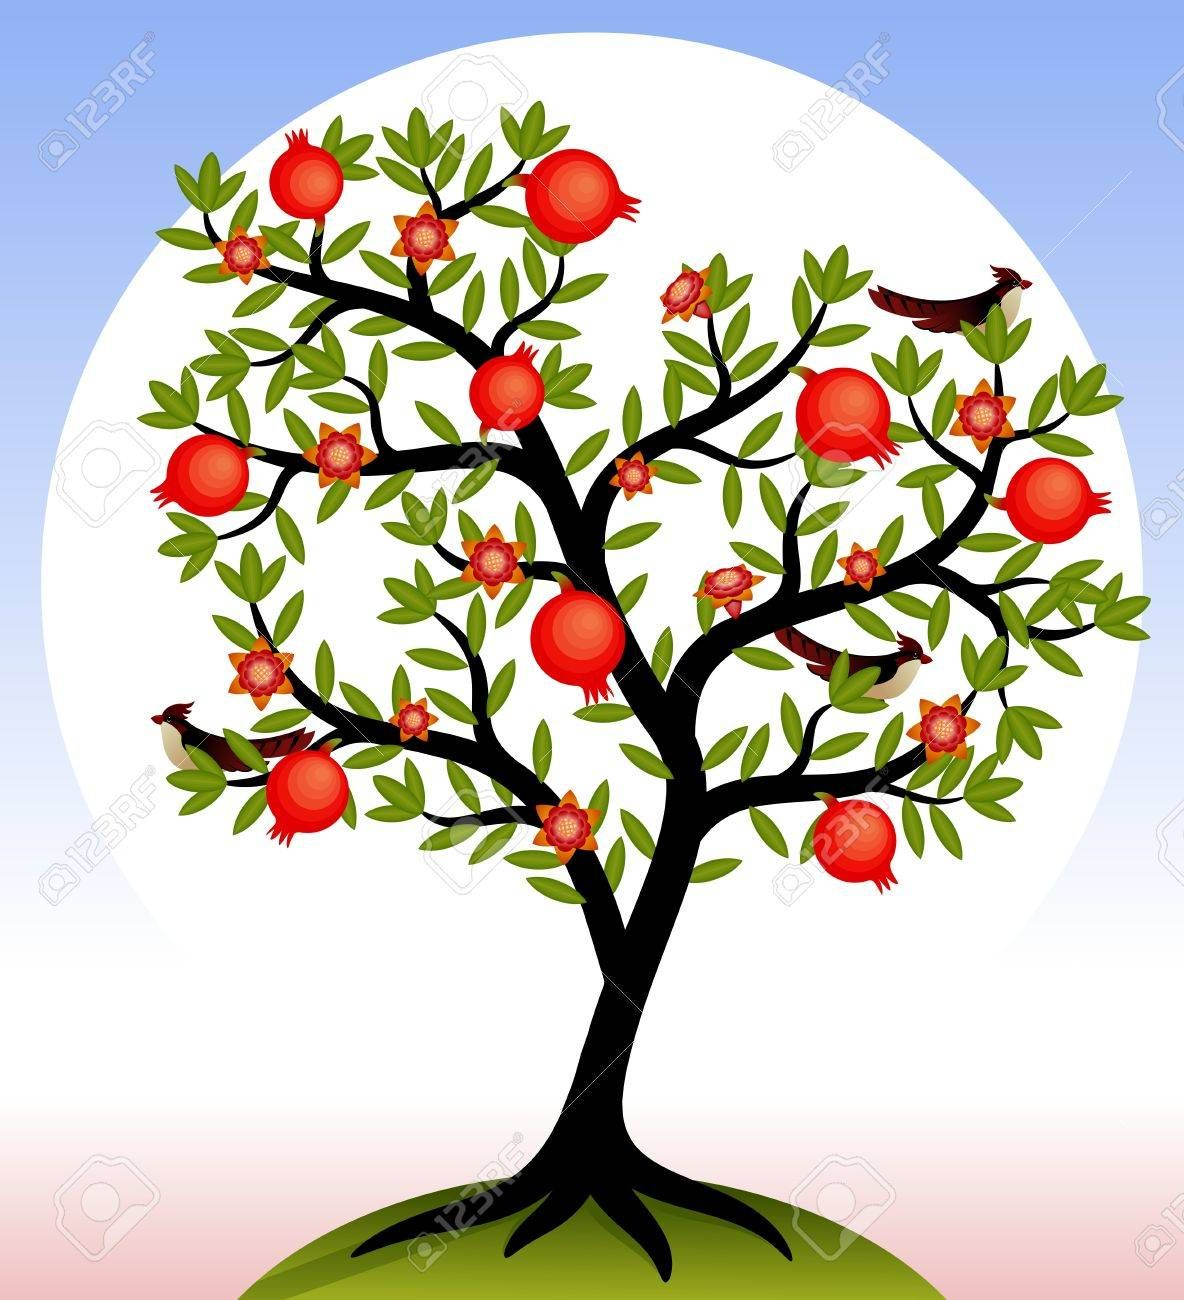 Fruit Tree Pomegranate Tree With Fruits And Flowers Birds On Fruit Trees Tree Mural Plant Drawing